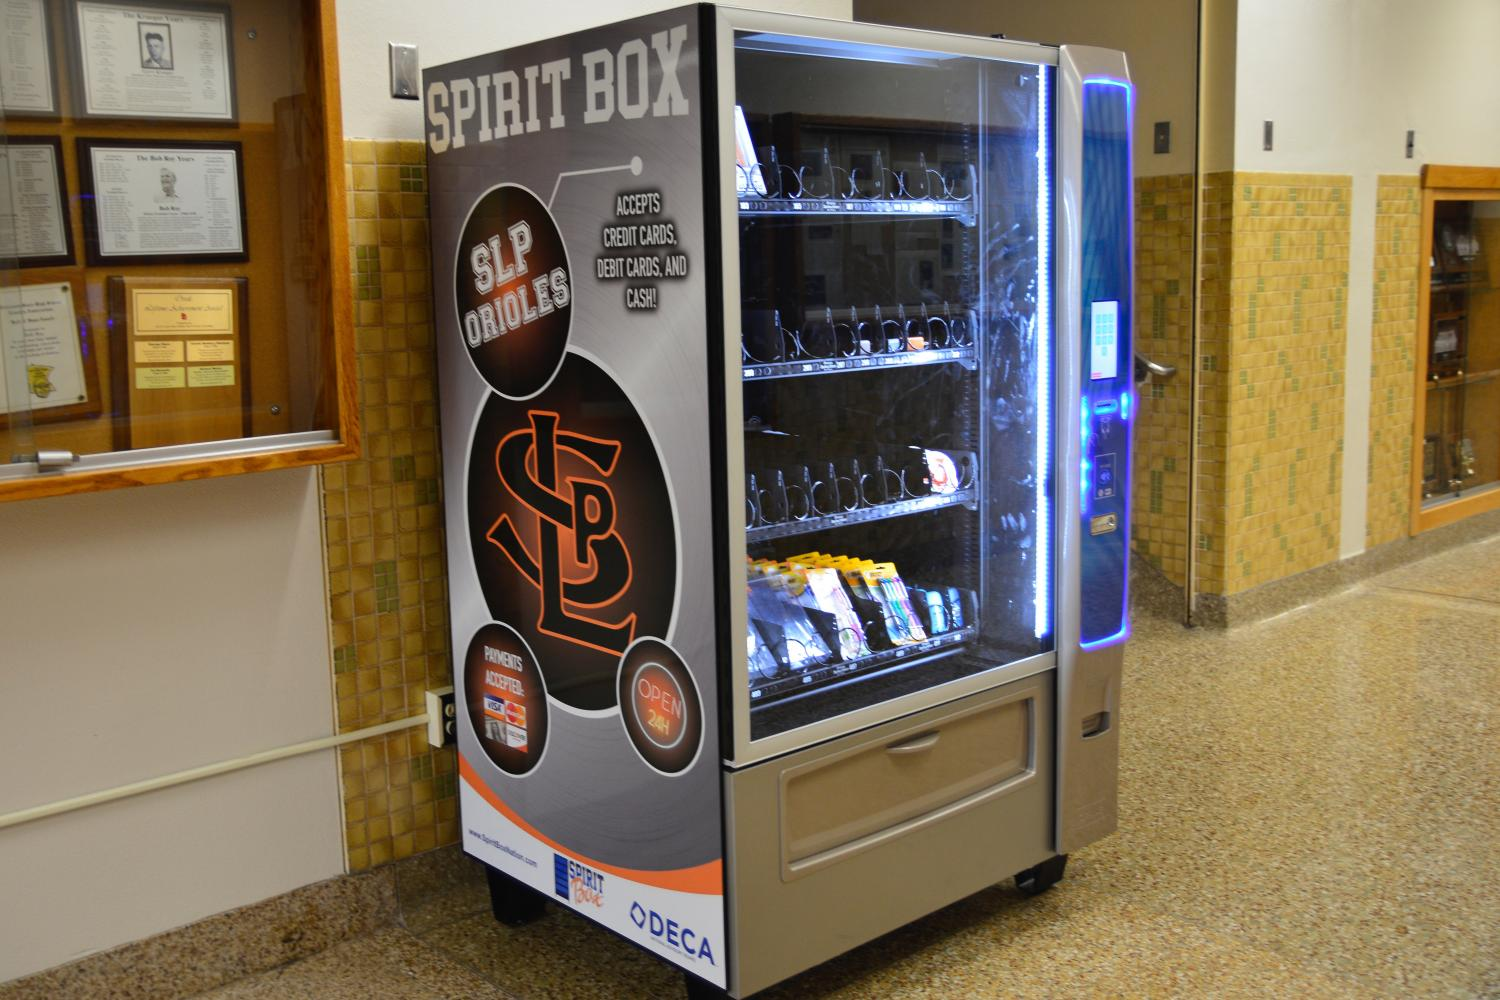 The+Spirit+Box+is+located+in+the+B1+hallway+near+the+field+house.+It+sells+chargers%2C+headphones%2C+pens%2C+and+deodorant%2C+among+other+things.